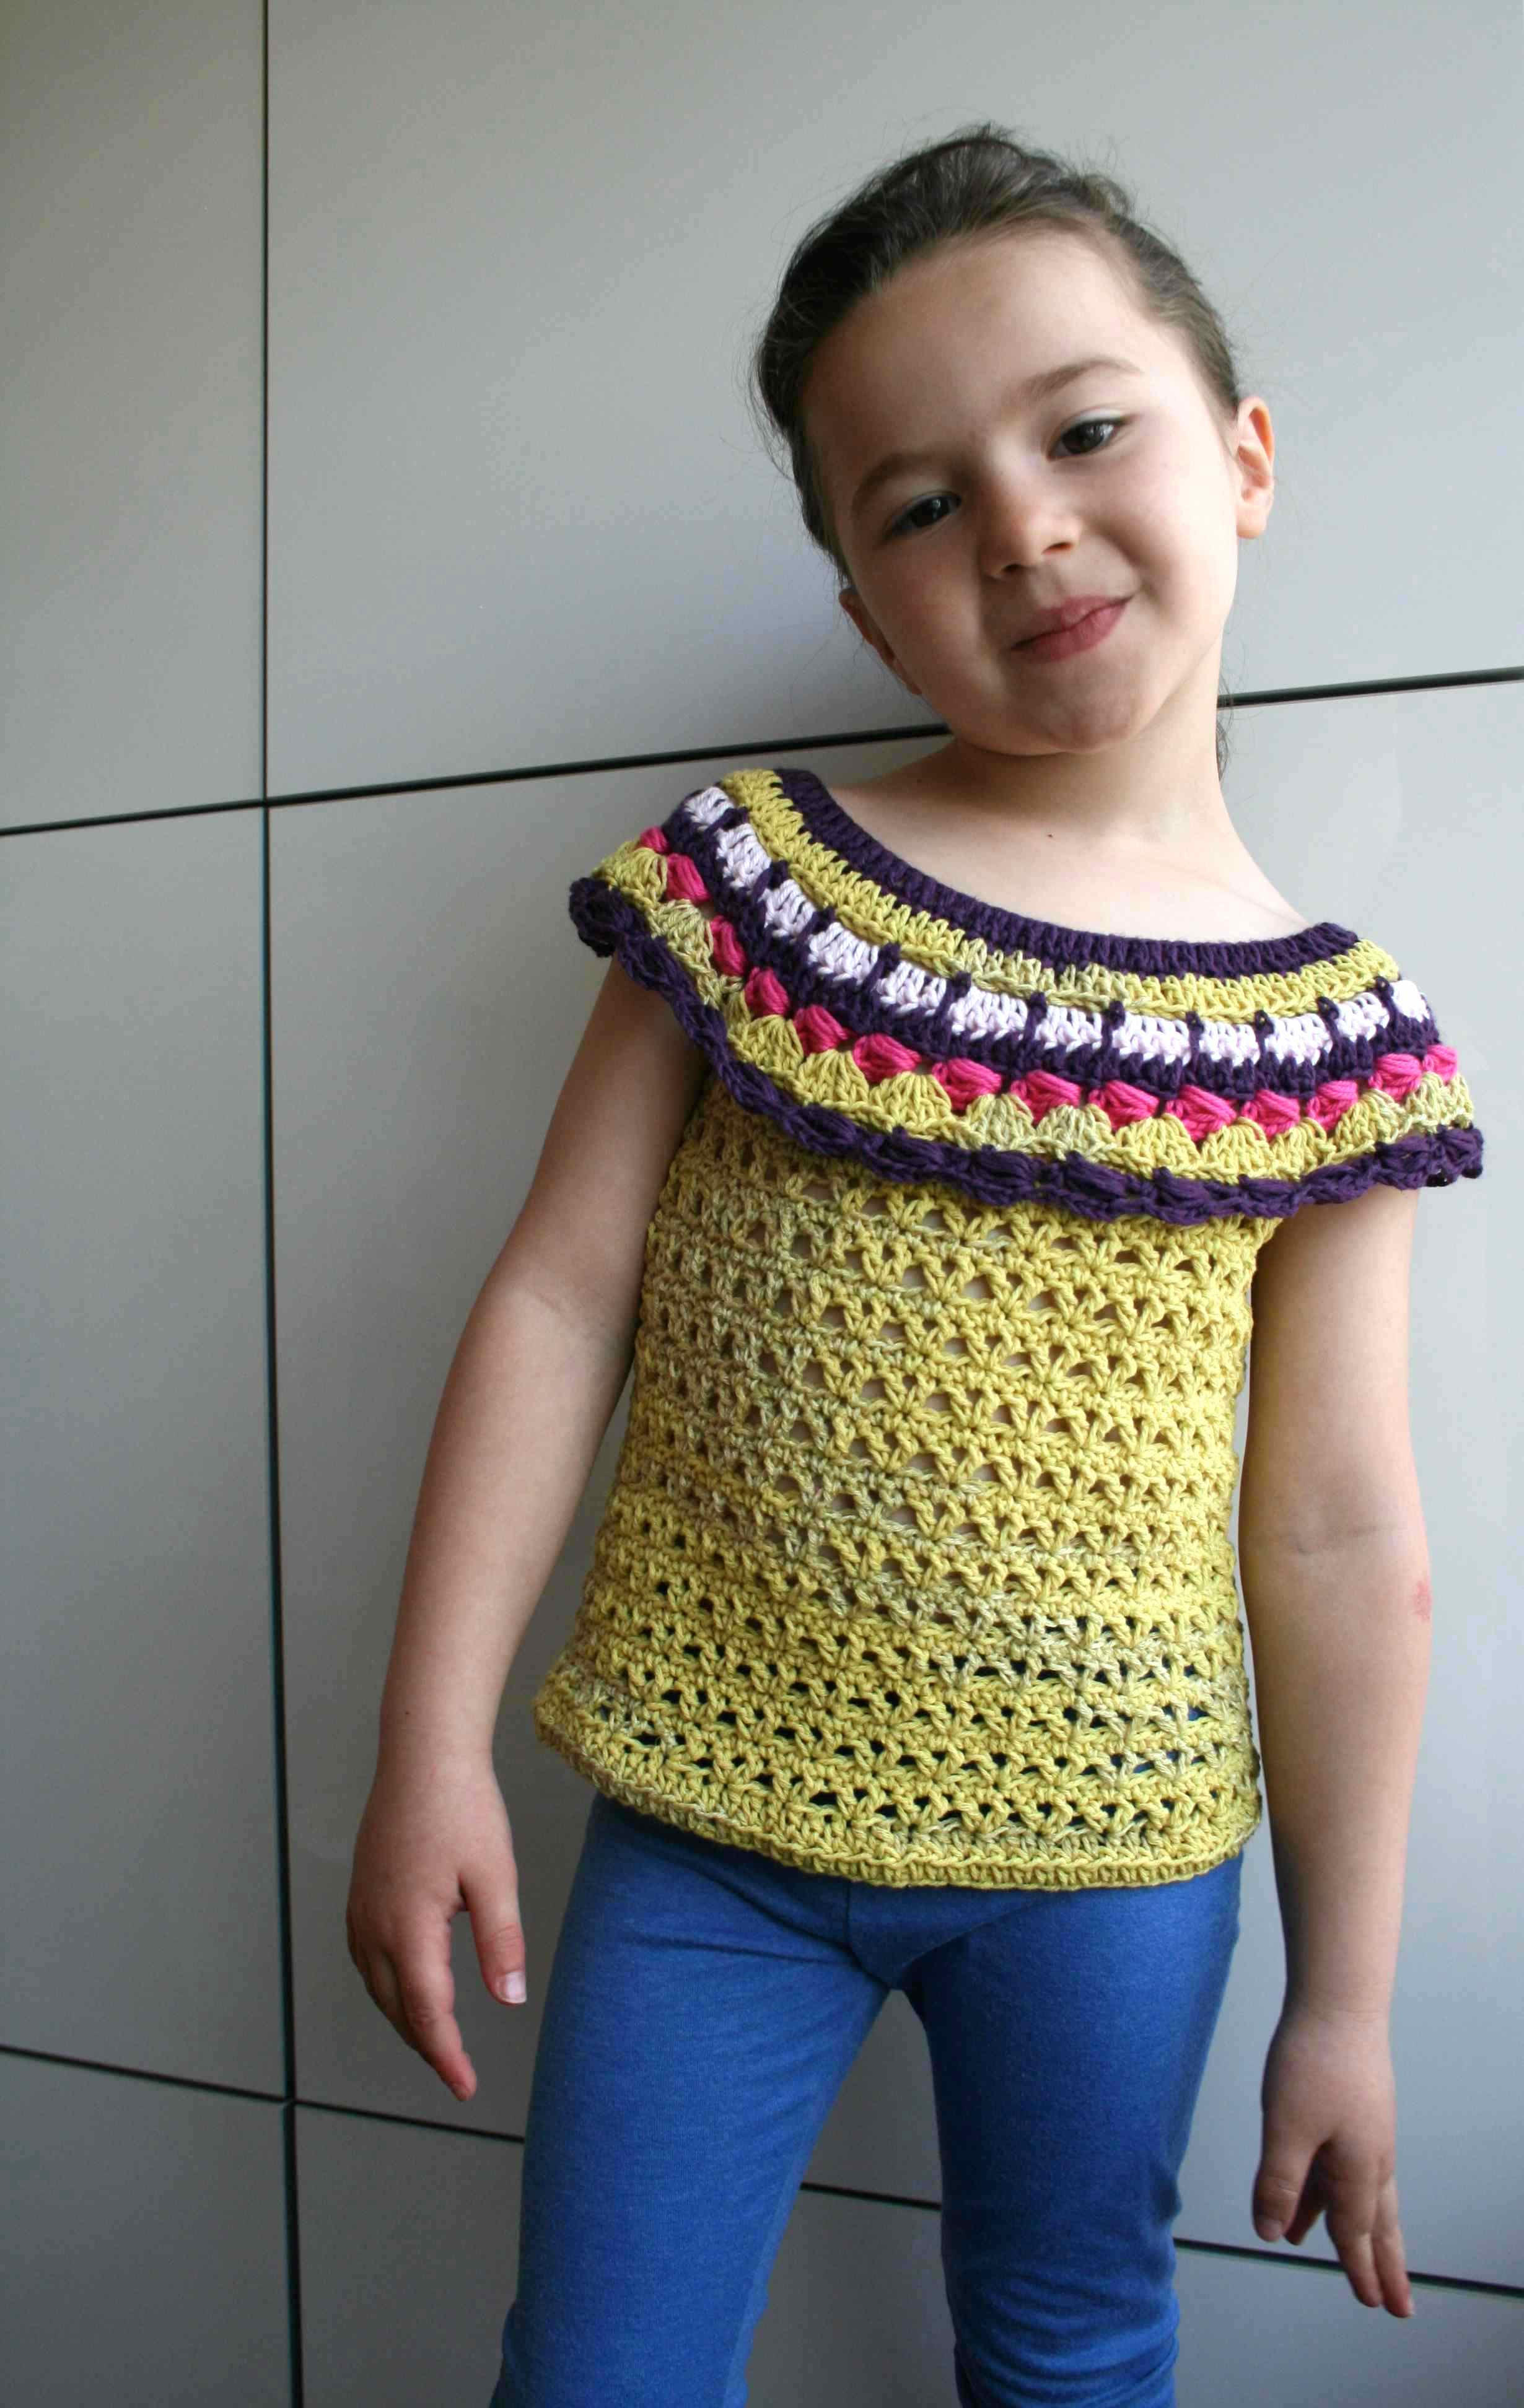 Today only $3 New spring summer crochet top pattern for